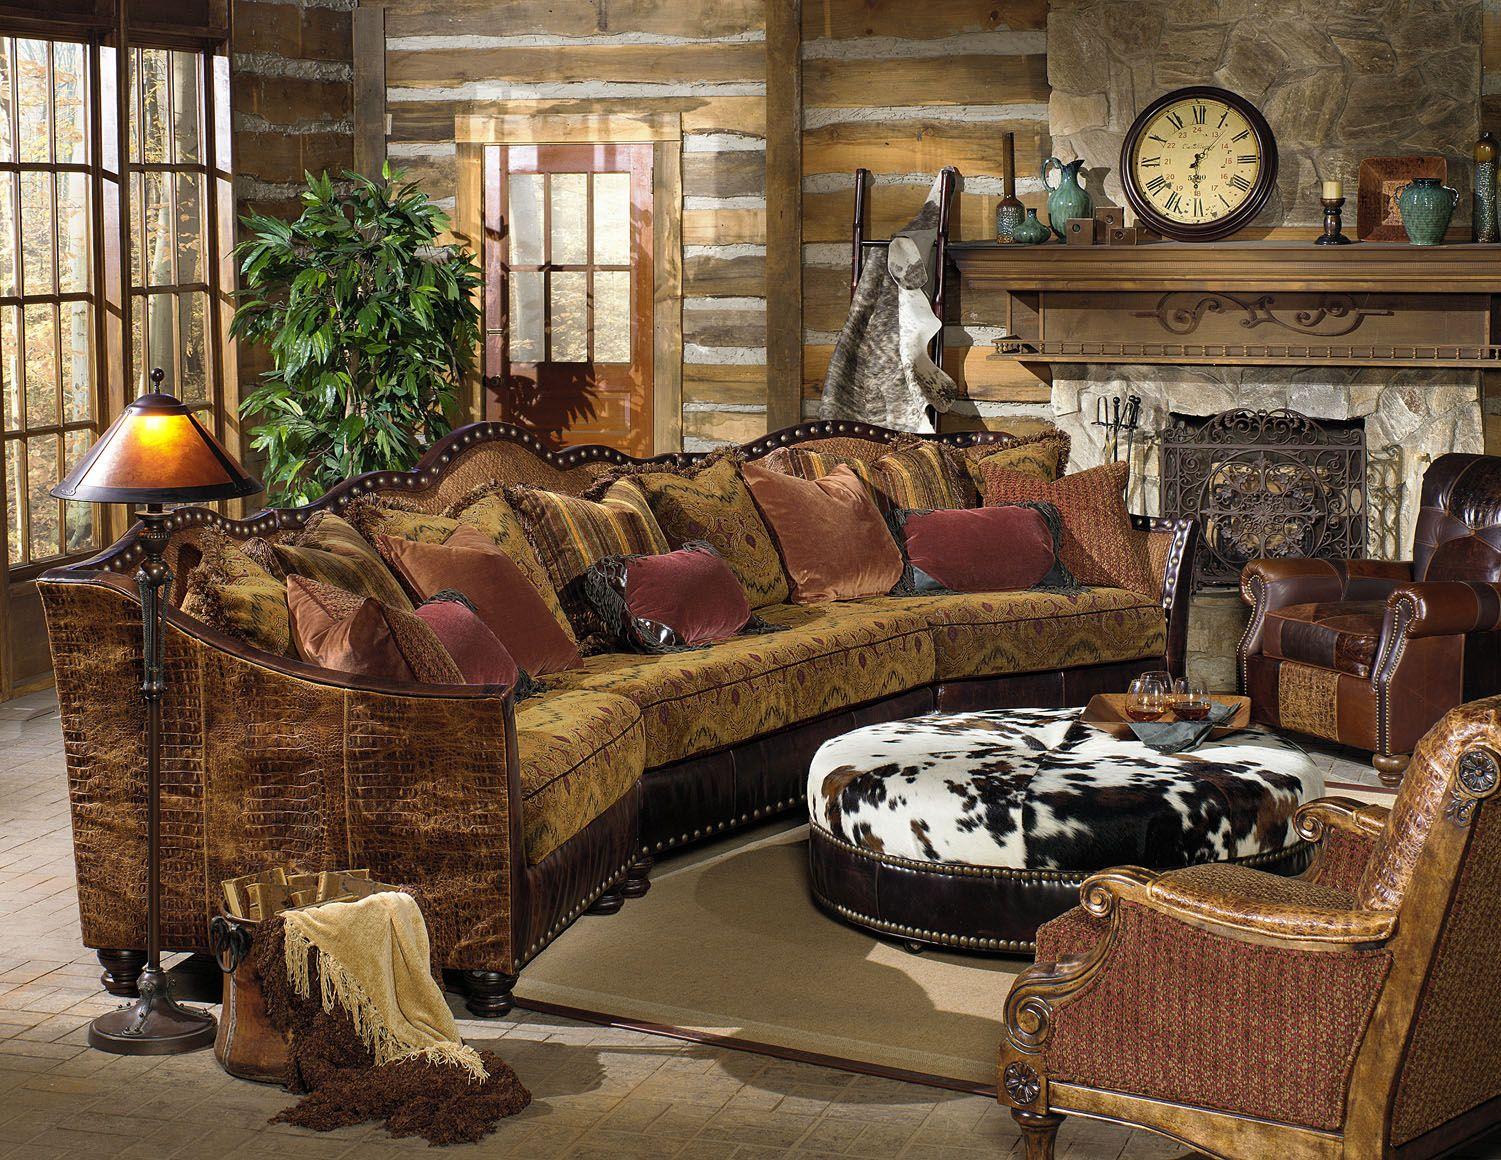 and at for ideas ranch back on southwest room furniture western rooms minimalist the southwestern cool pinterest style livings living decor